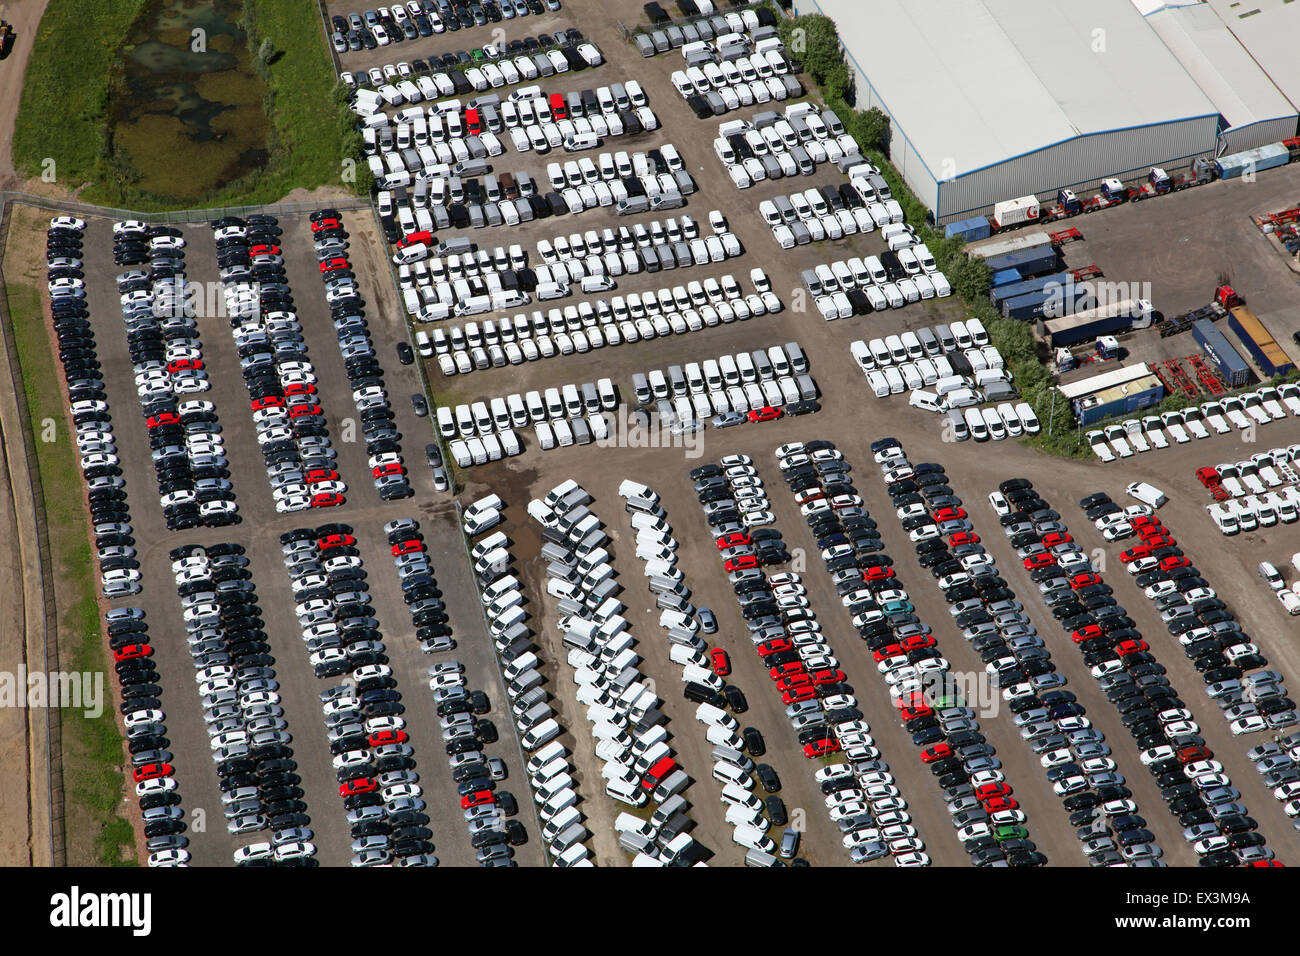 aerial view of parked cars & vans outside a factory in Stoke on Trent, UK - Stock Image